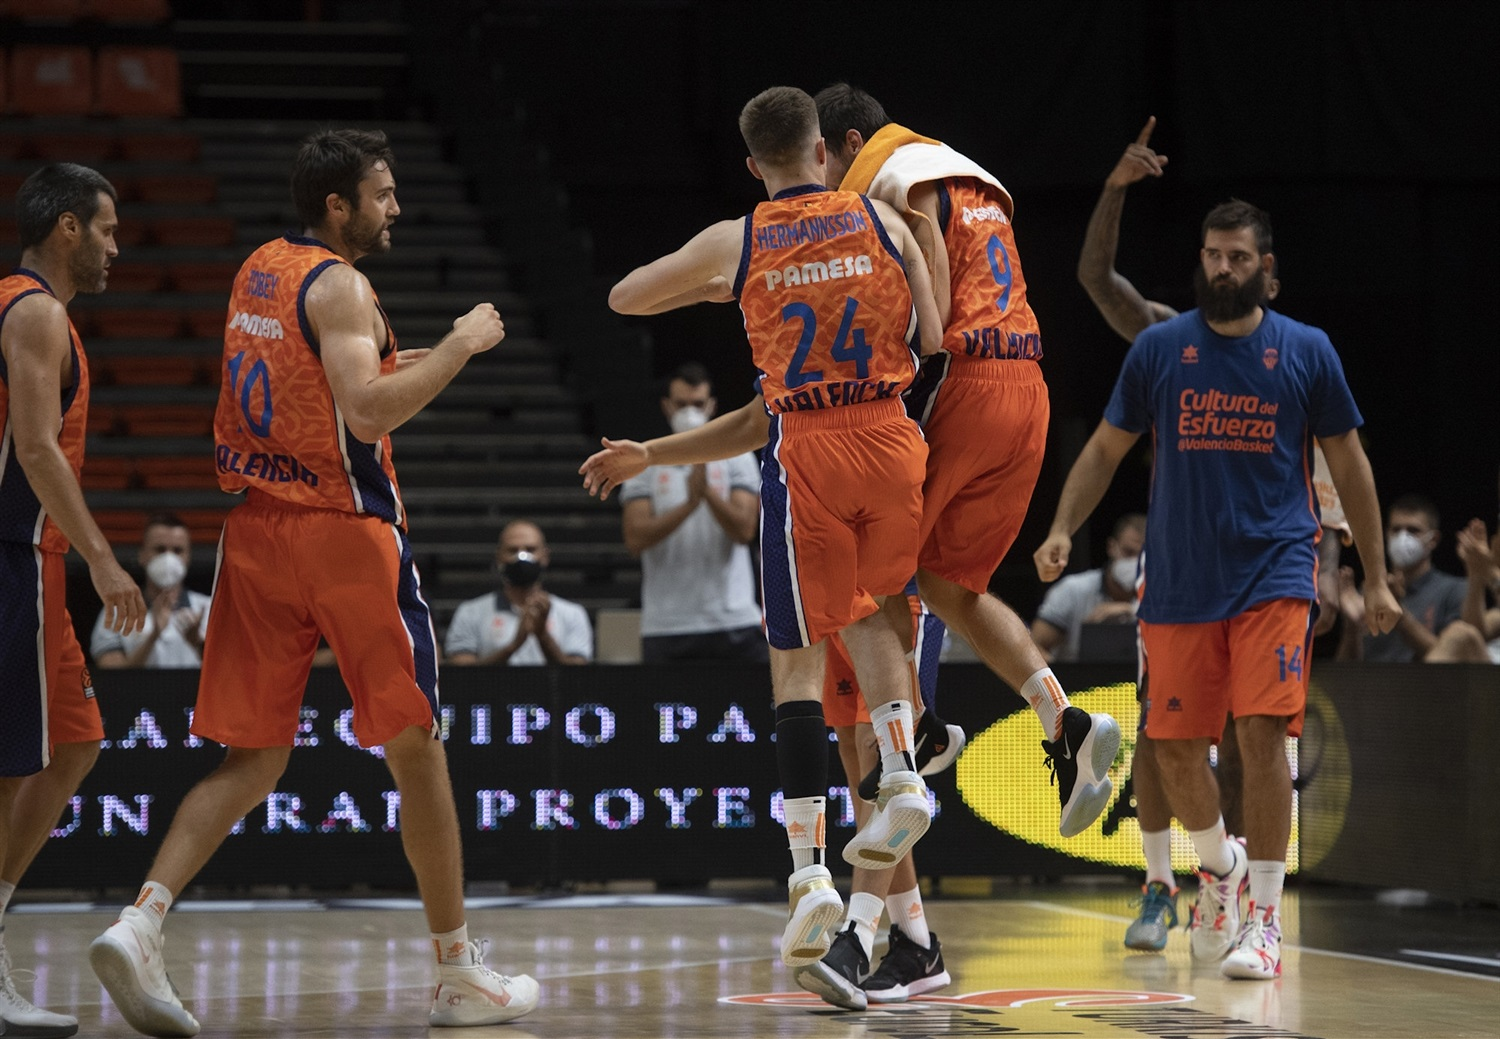 Martin Hermannsson celebrates - Valencia Basket - Preseason Tournament Valencia 2020 - EB20